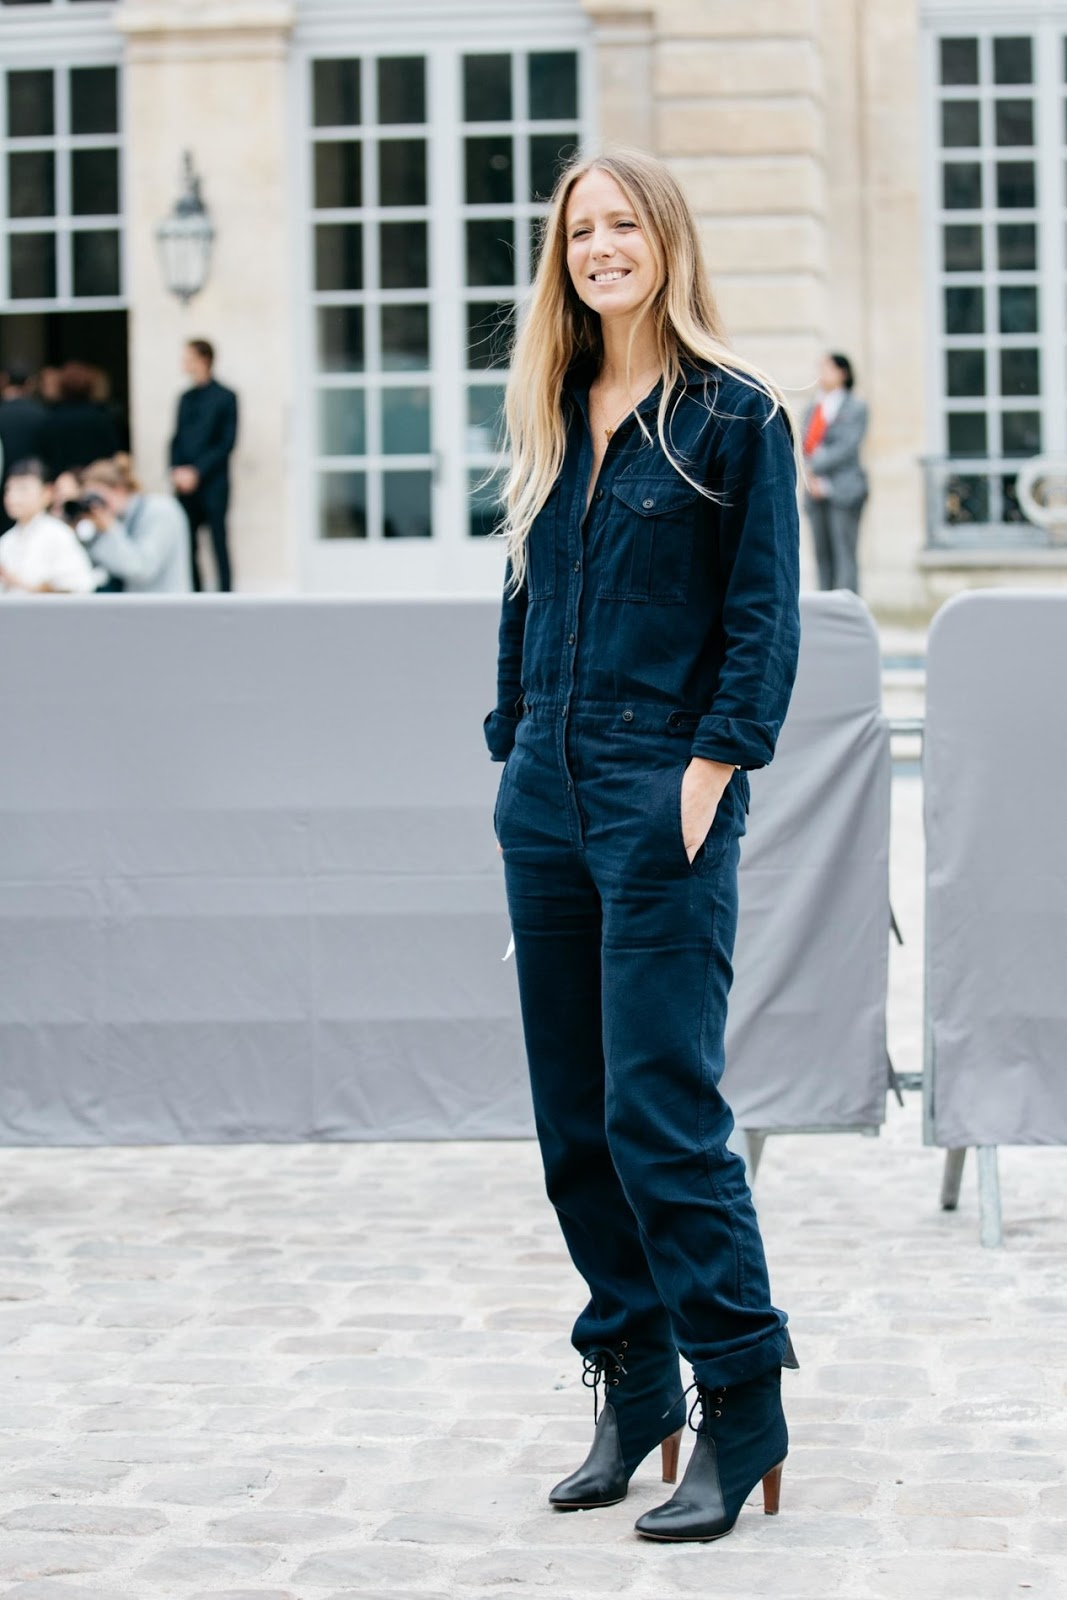 Style Inspiration: The Parisian Way to Wear this Chic Spring Trend